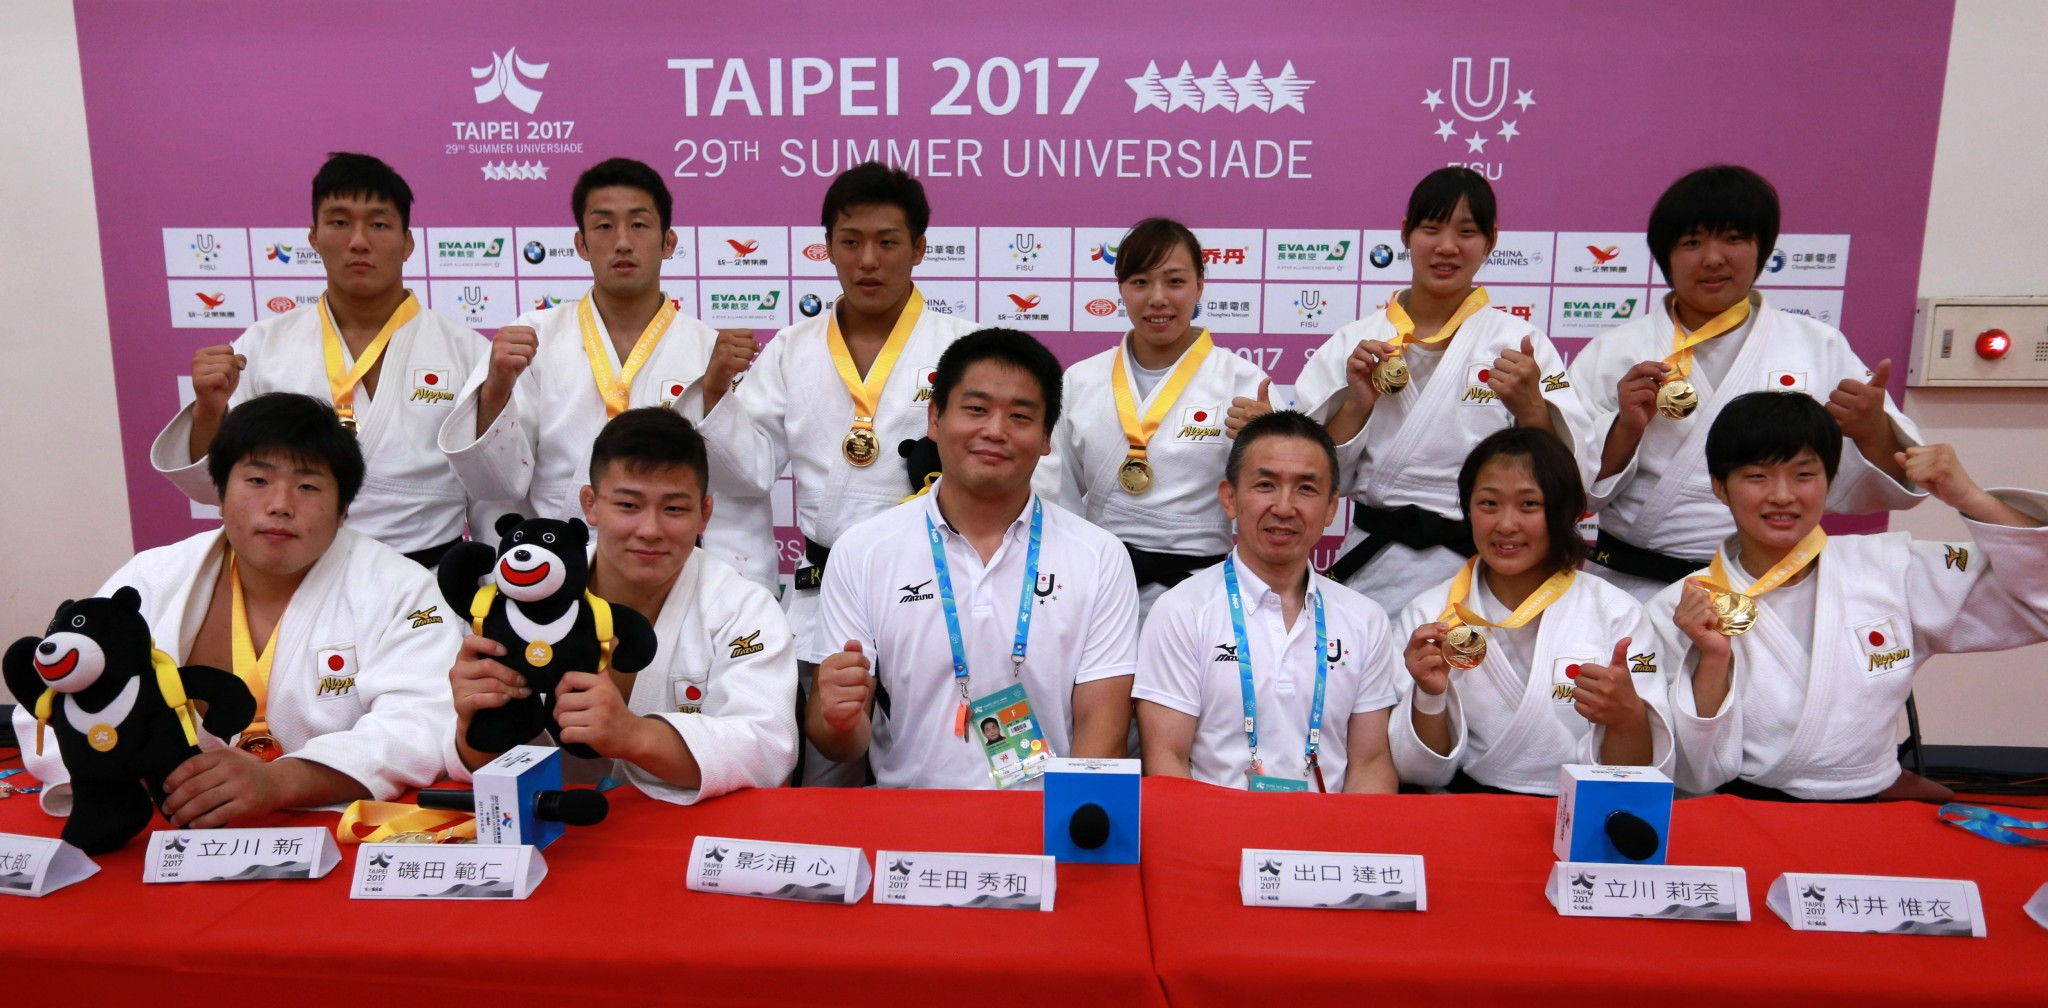 Japan won men's and women's team judo golds ©Taipei 2017